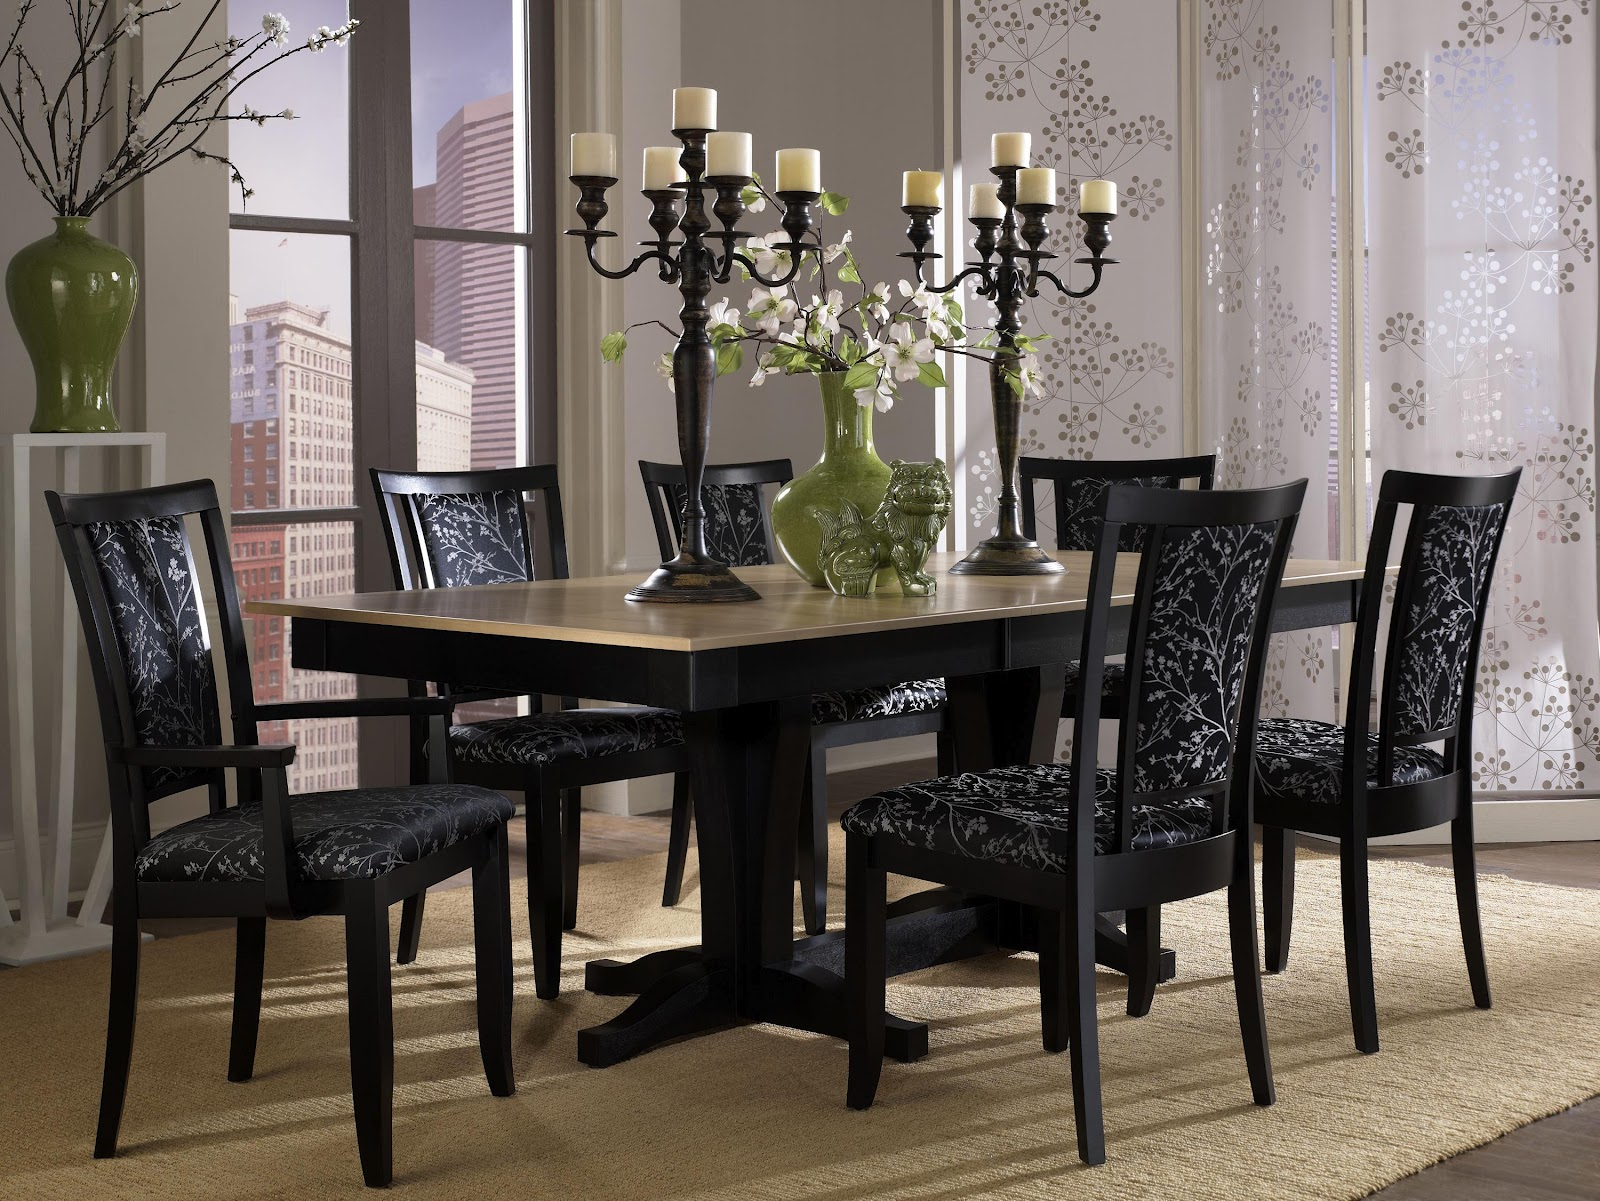 Canadel dining room sets new york dining room unique for Rooms to go dining sets